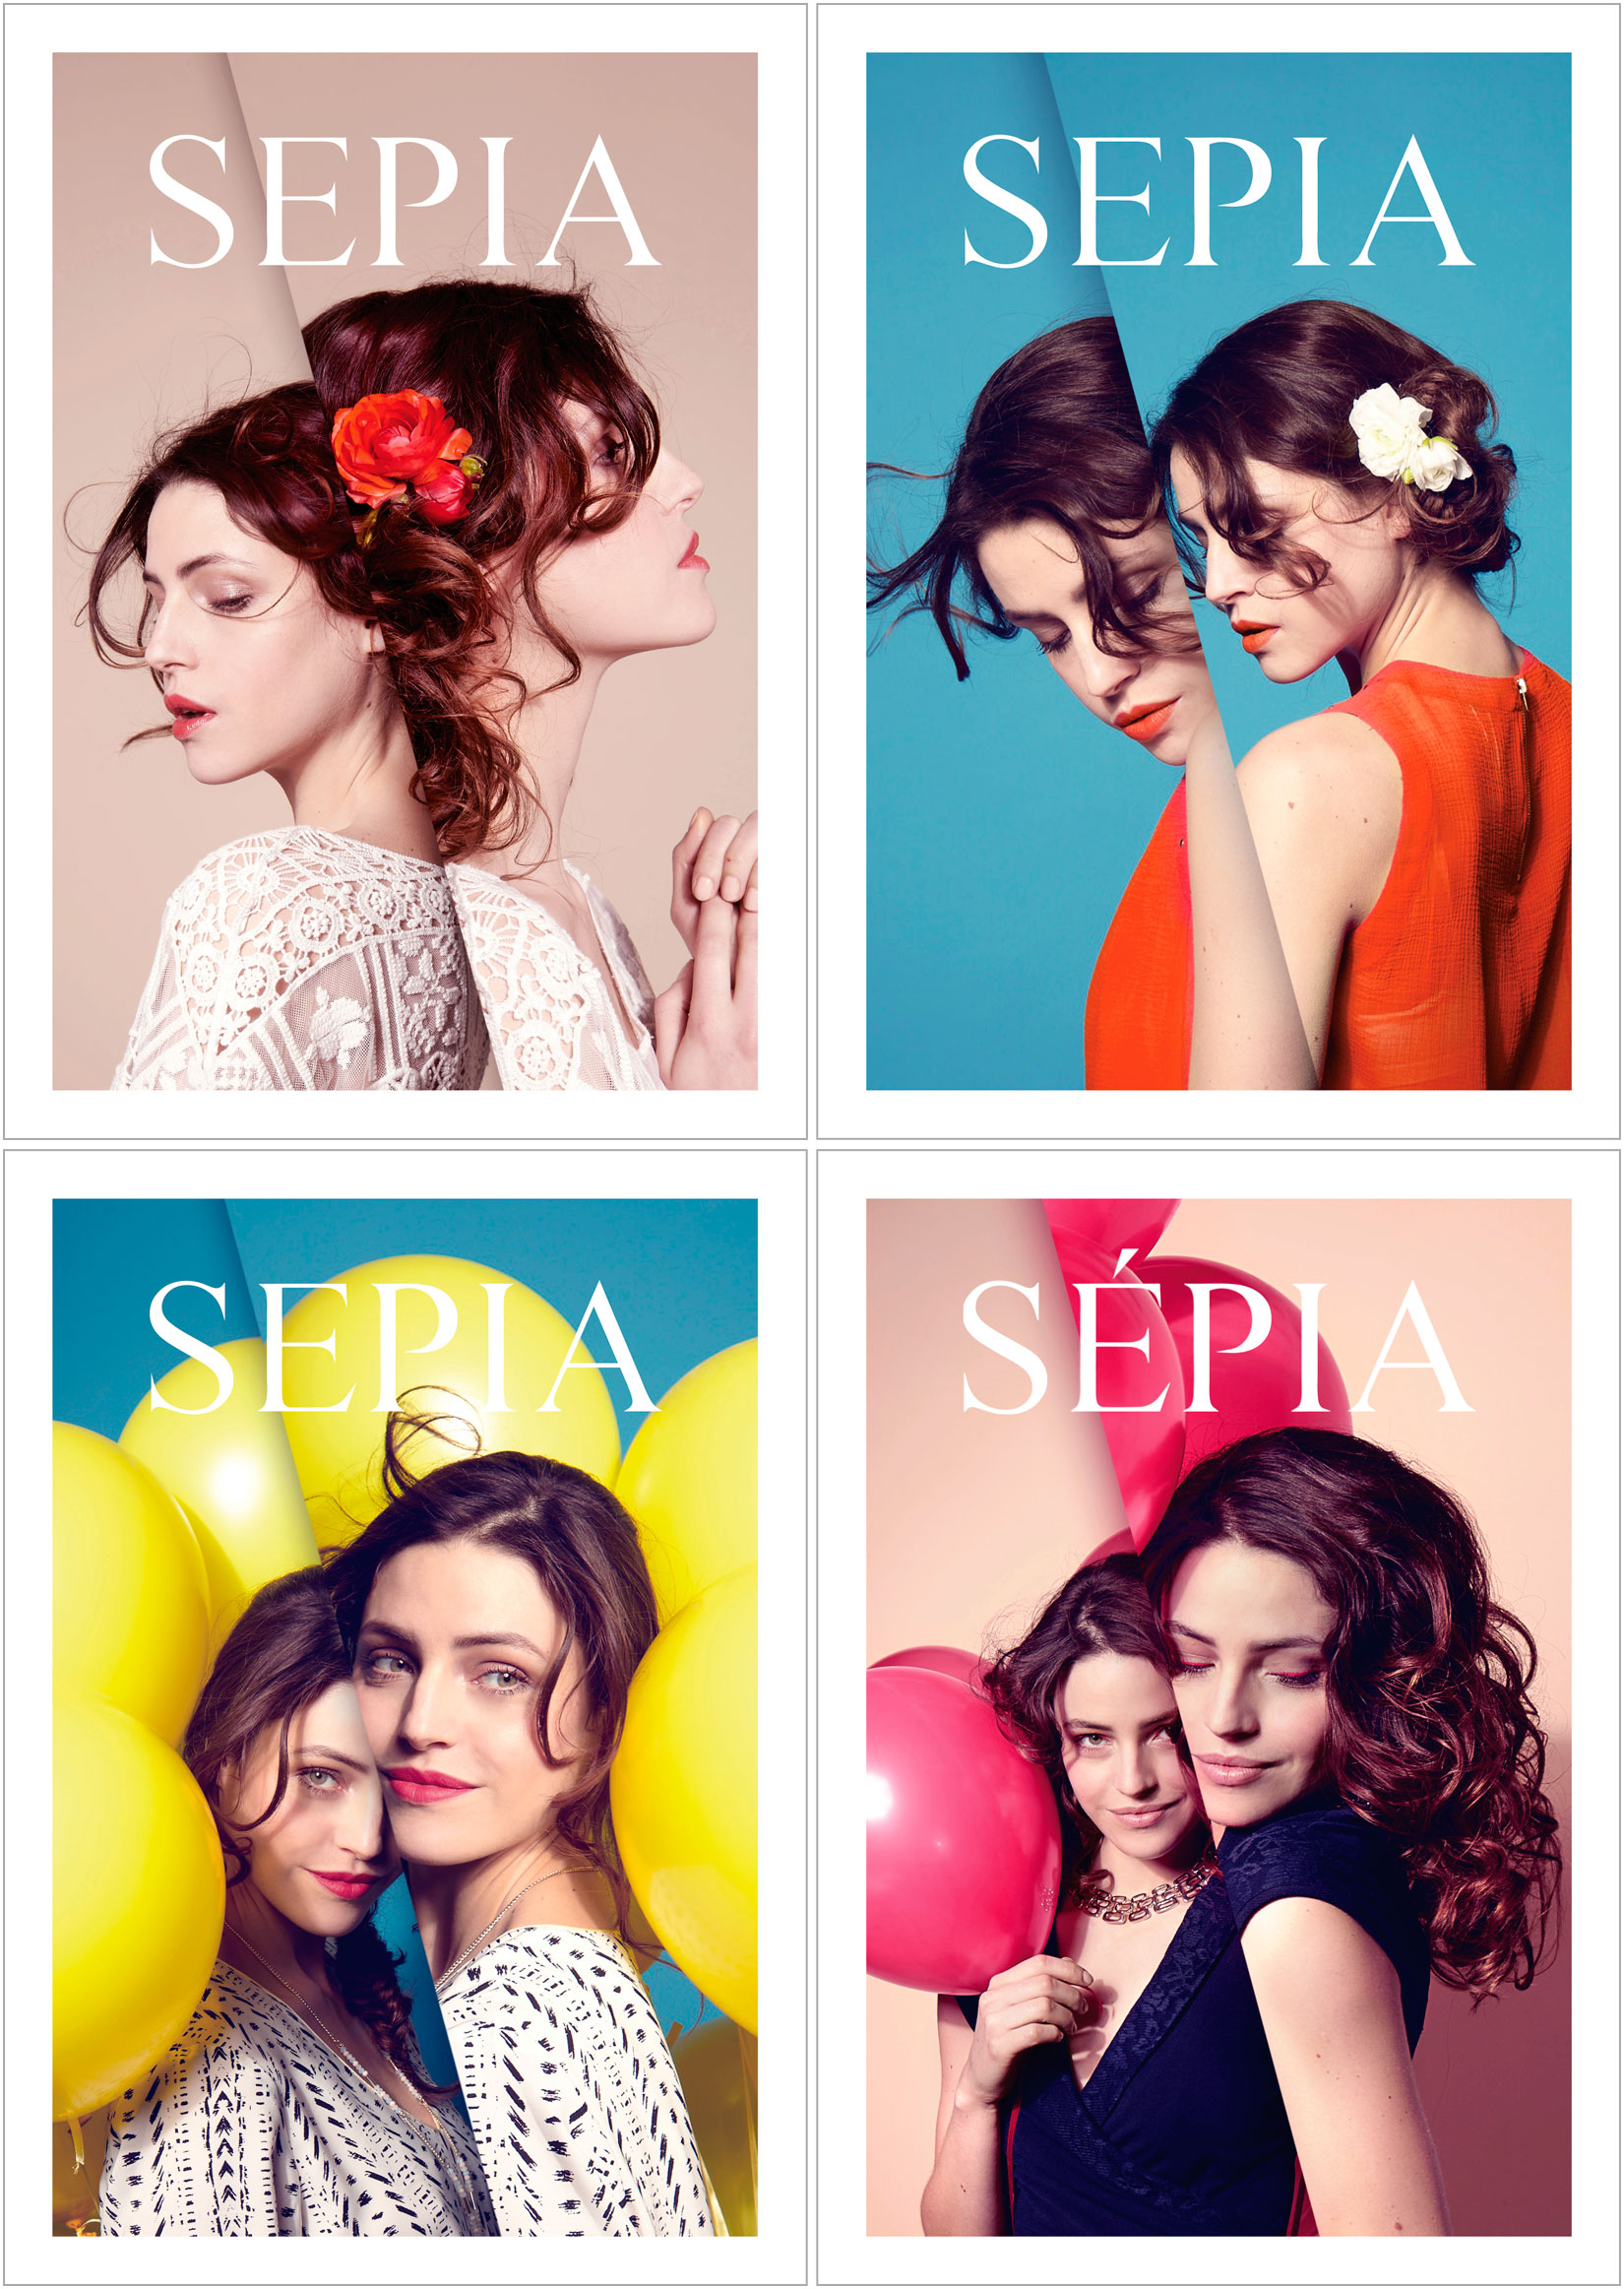 sepia-campagne-SS16-4